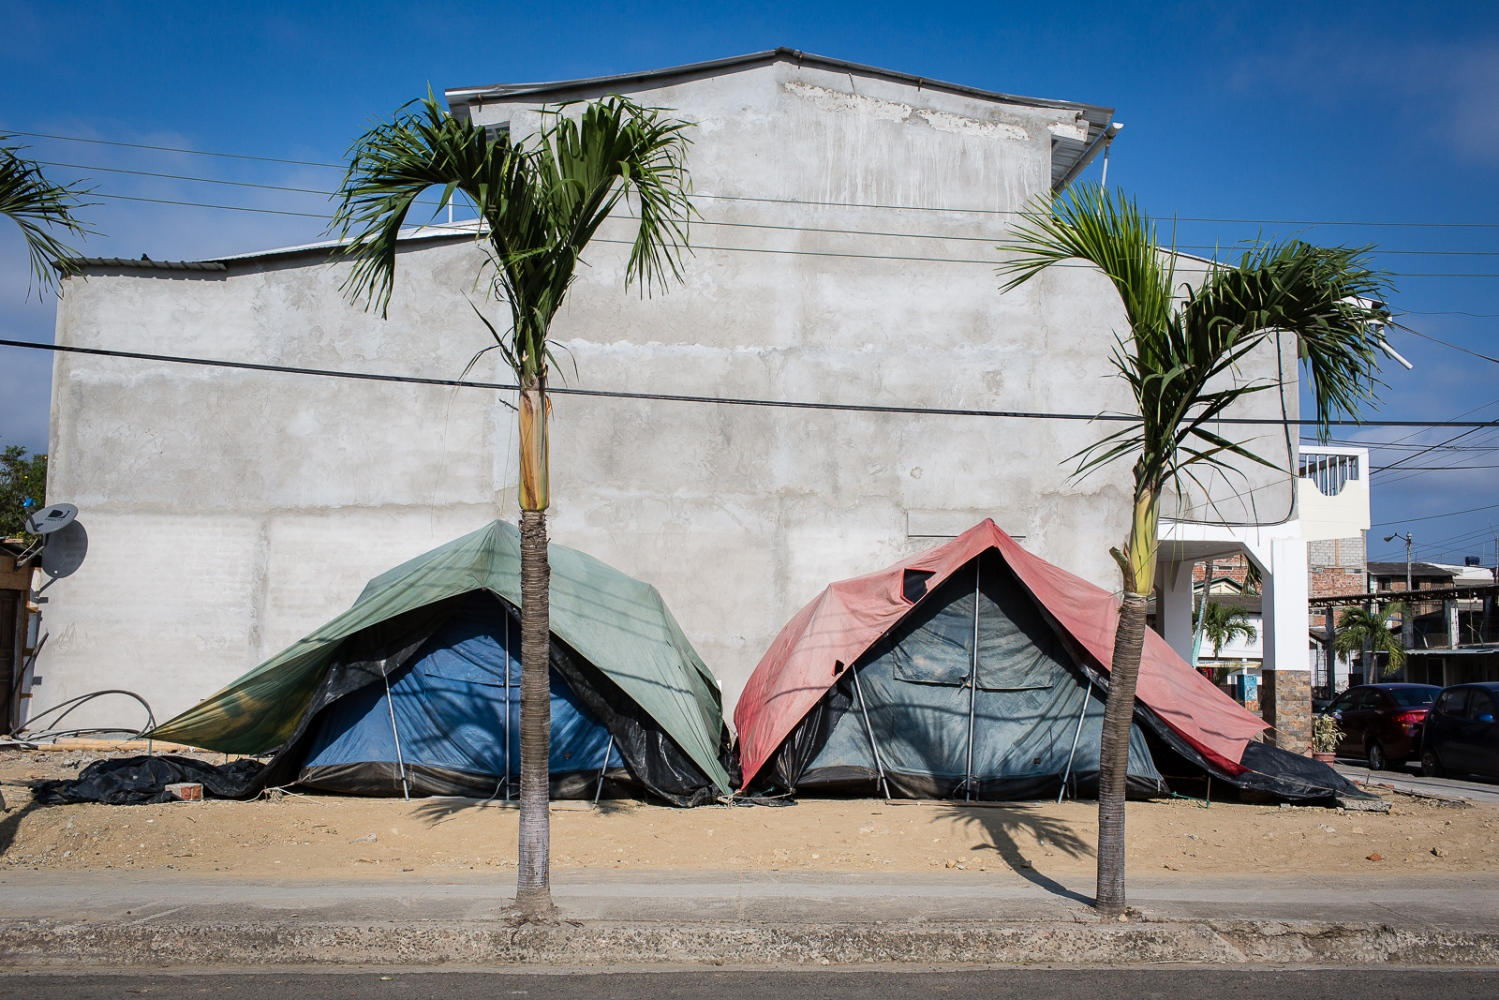 Two makeshift tents on the side walk in Bahia de Caráquez. Bahia is a beach touristic destination, specially to Ecuadorians from the mountains, but after the 16th April earthquake most of the city was damaged and destroyed leaving many locals living in provisional homes all around the city.